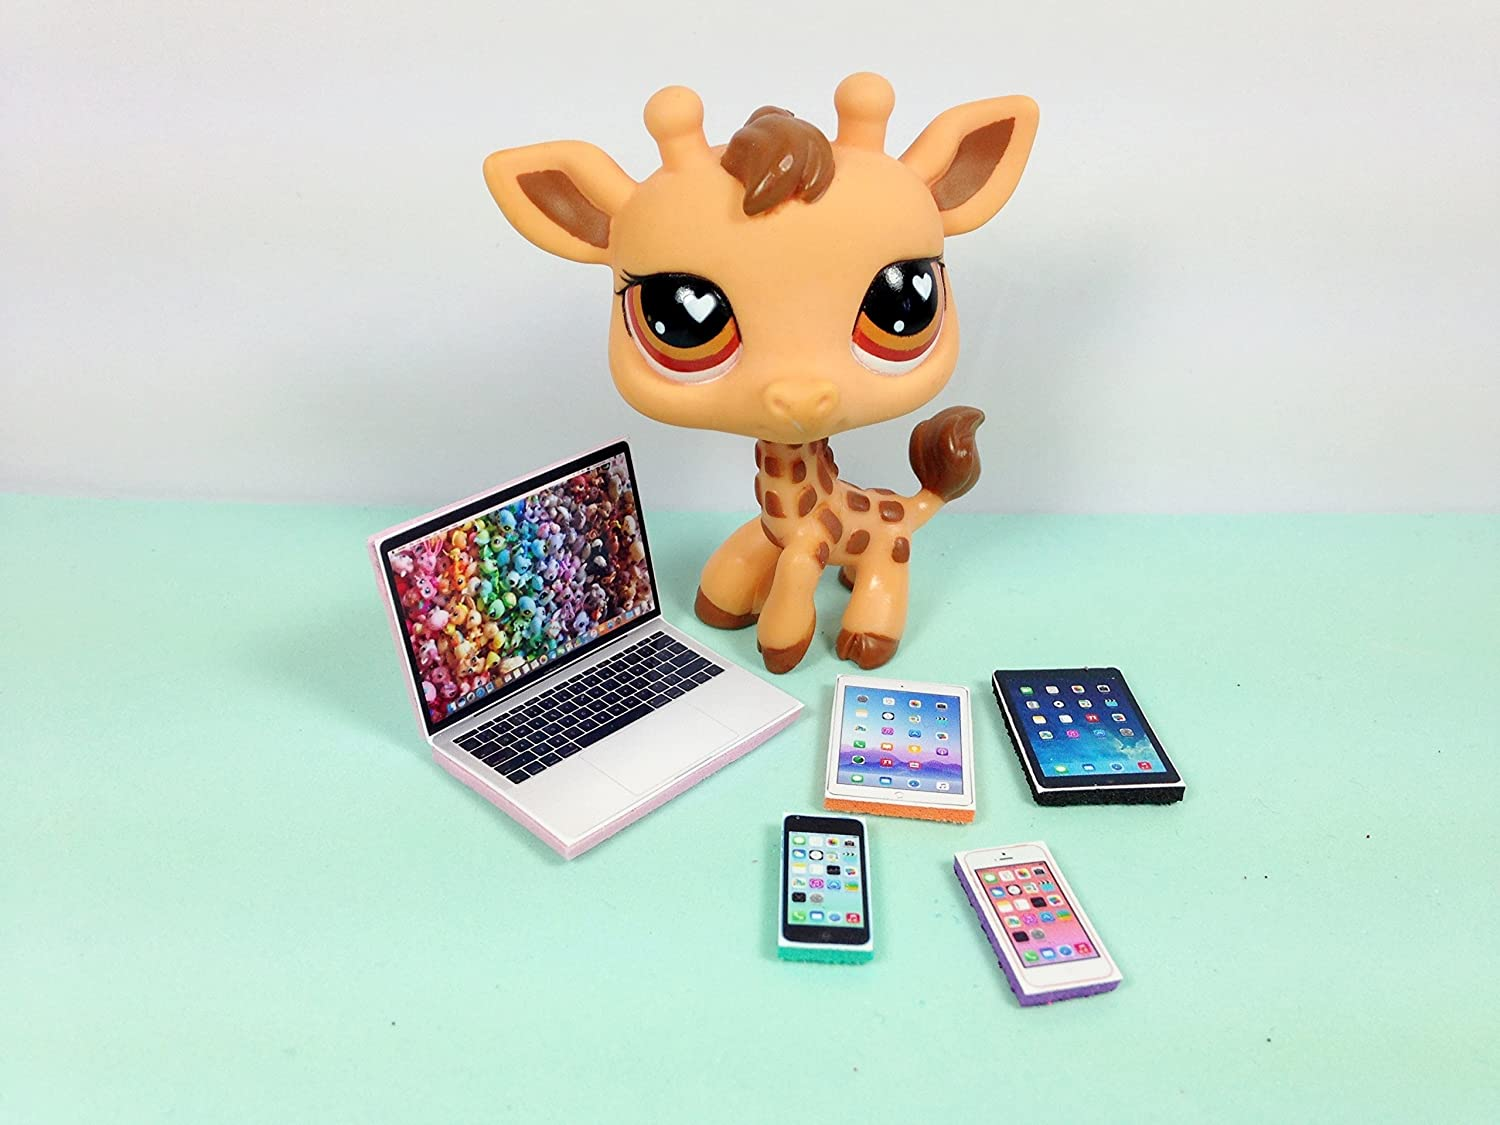 LPS Littlest Pet Shop 5 Accessories Lot Set Laptop, 2 Tablets, 2 Phones PET NOT INCLUDED